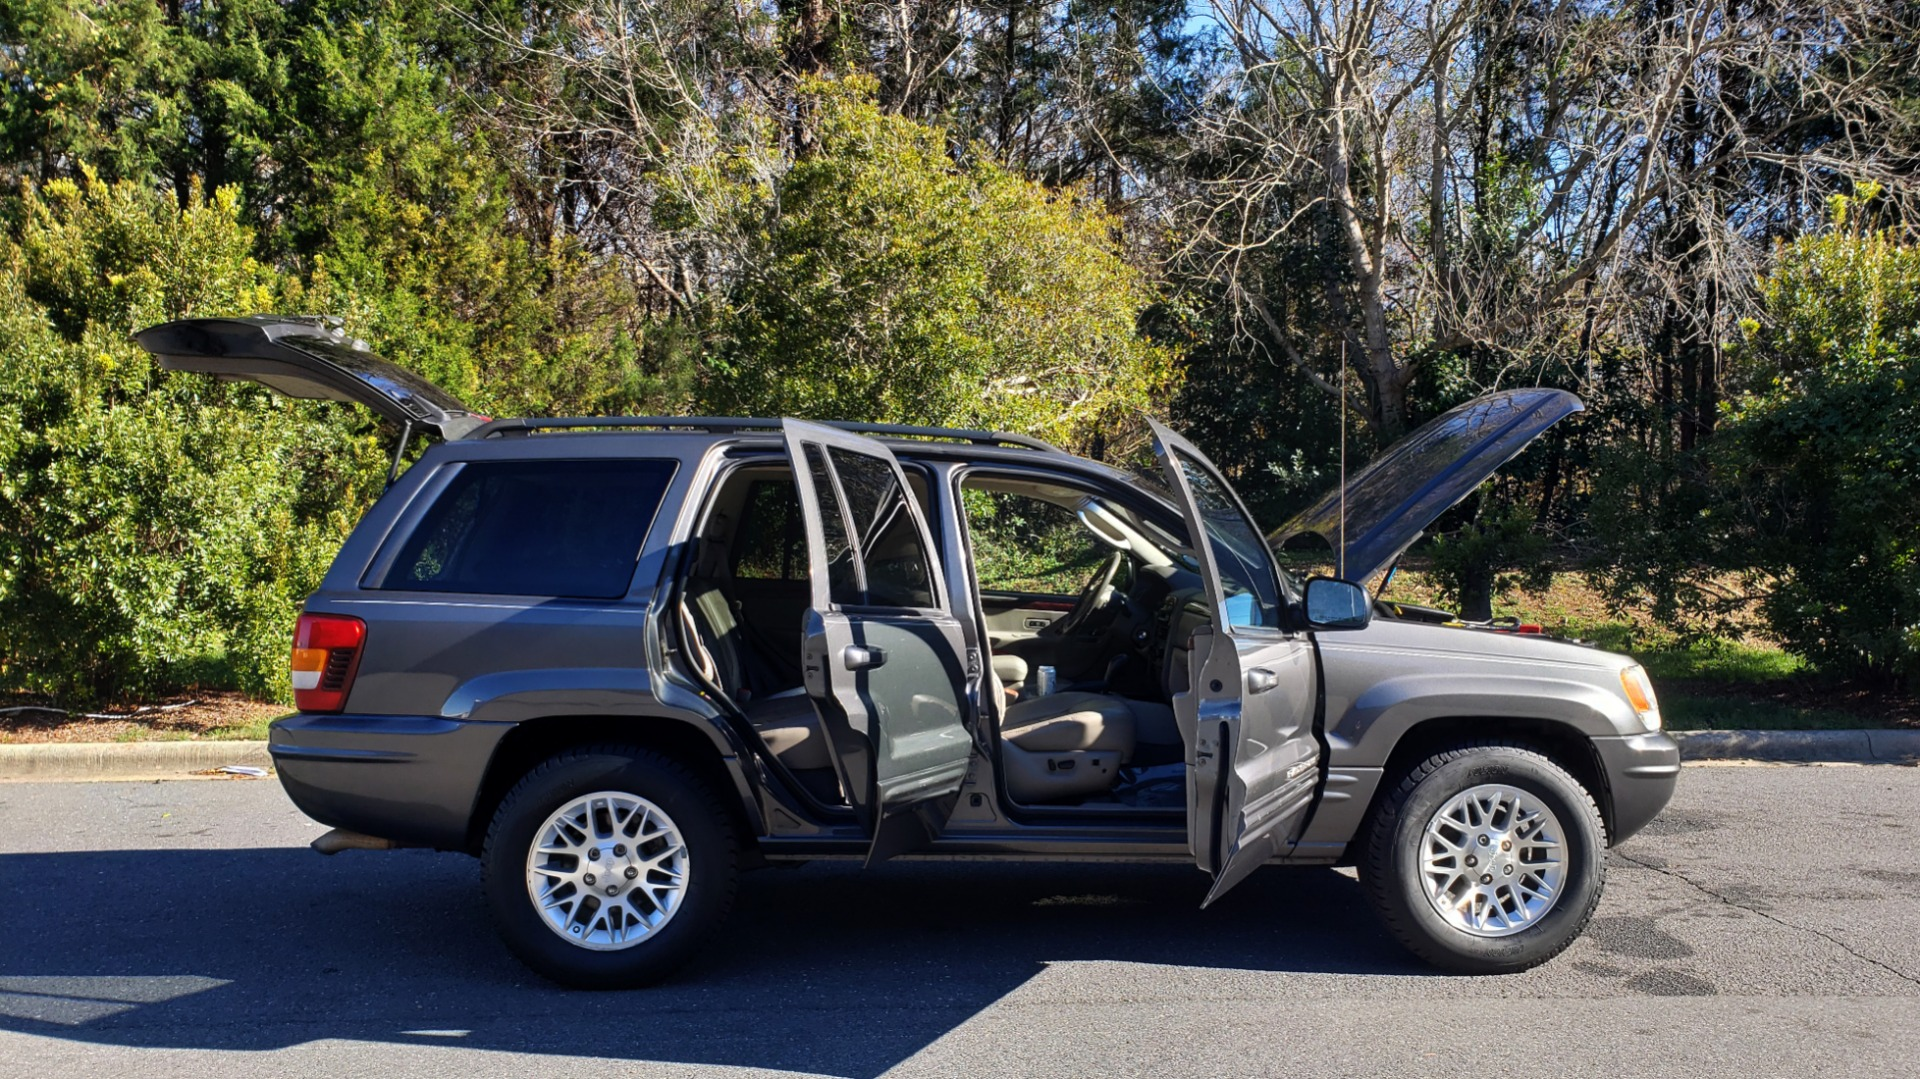 Used 2002 Jeep GRAND CHEROKEE LIMITED 4X4 / SUNROOF / 4.7L V8 / 5-SPD AUTO / CLD WTHR for sale Sold at Formula Imports in Charlotte NC 28227 9